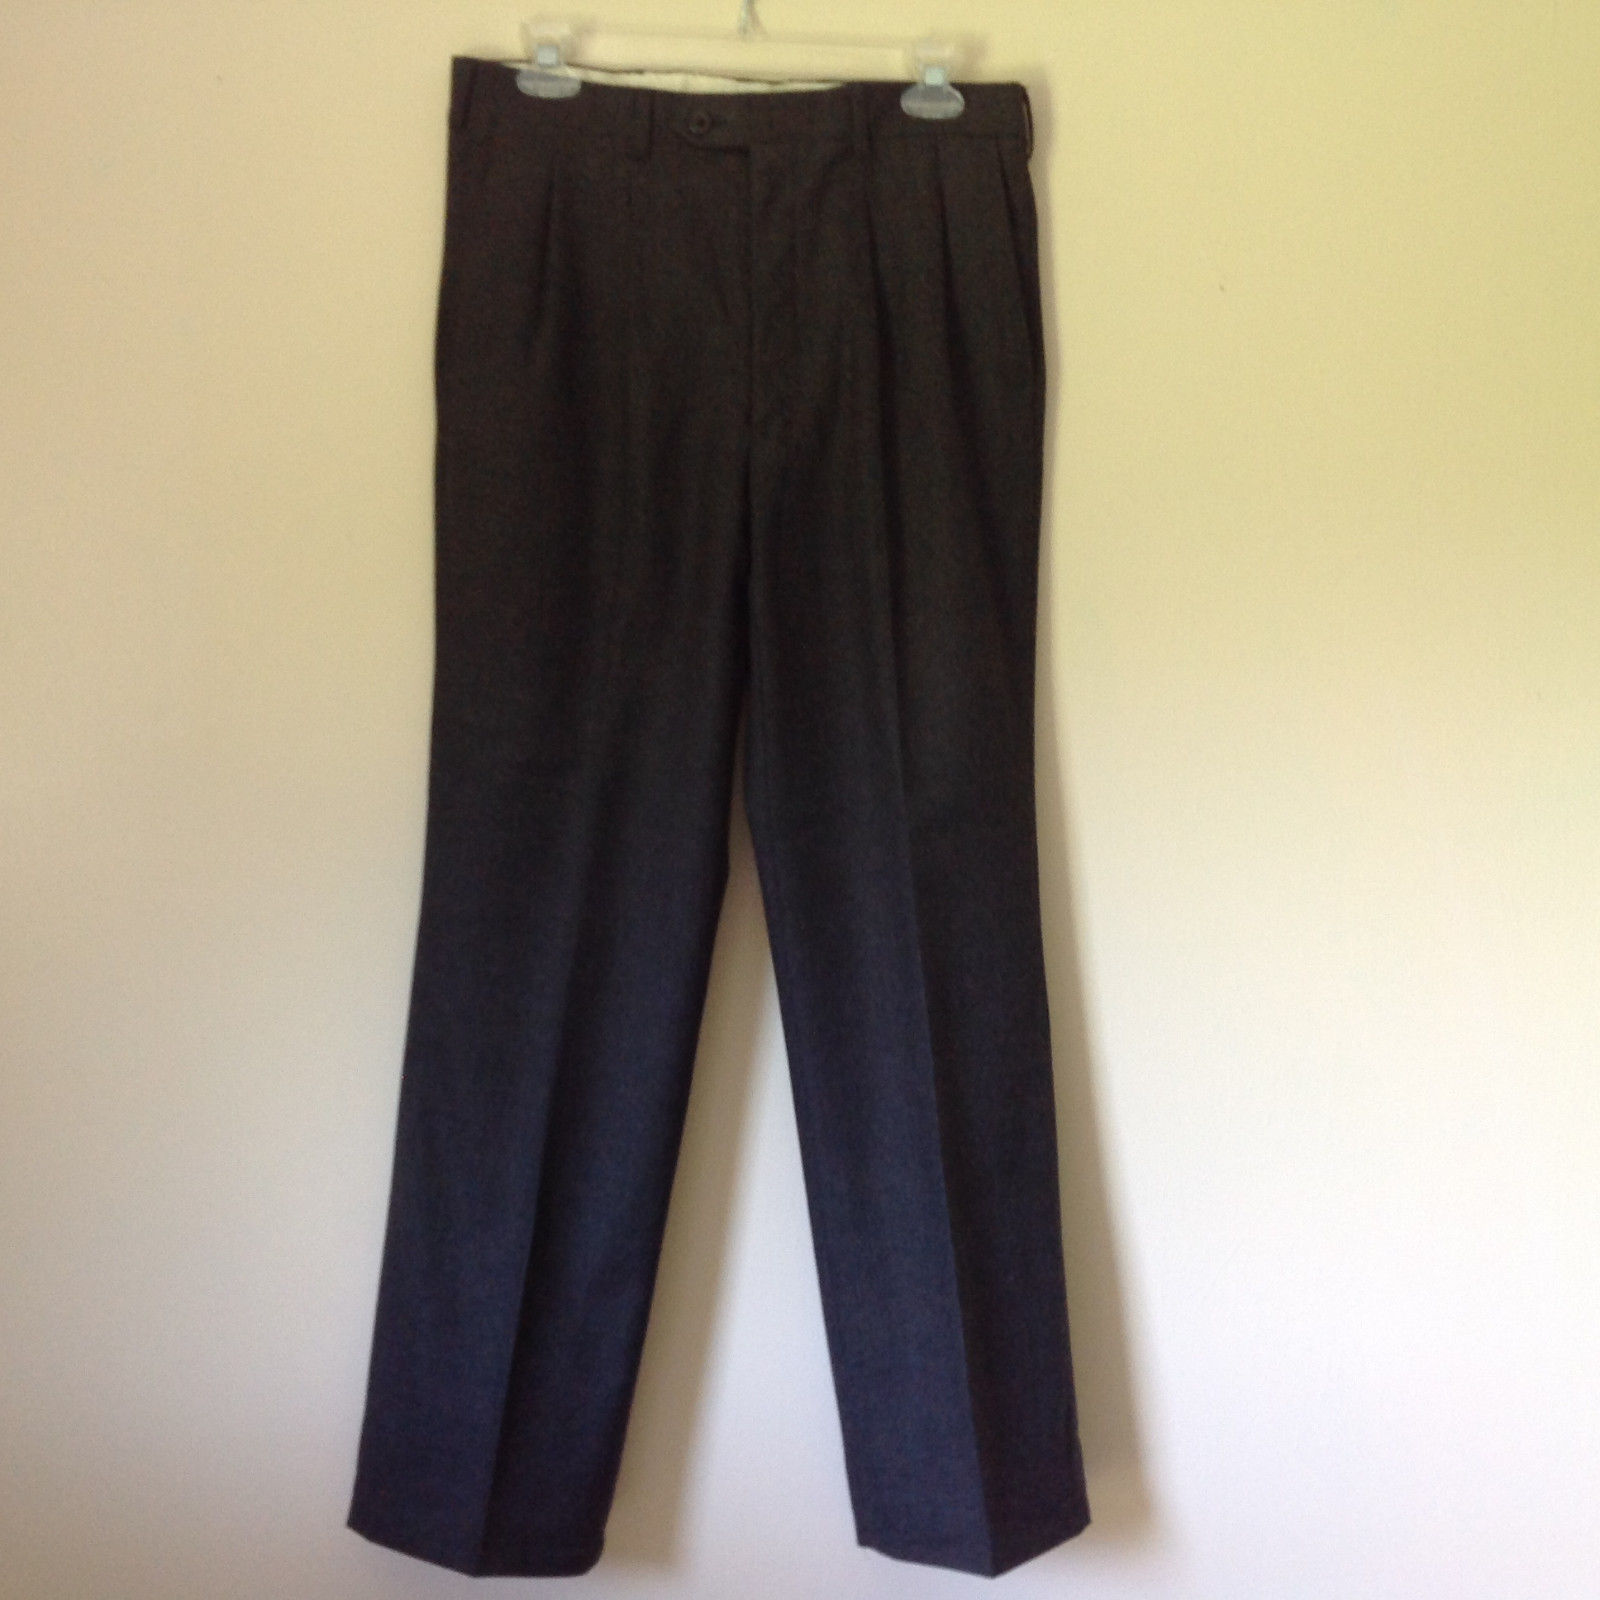 Gray Dress Pants by Louis Raphael Pure Laine Vierse All Pure Wool Size 31